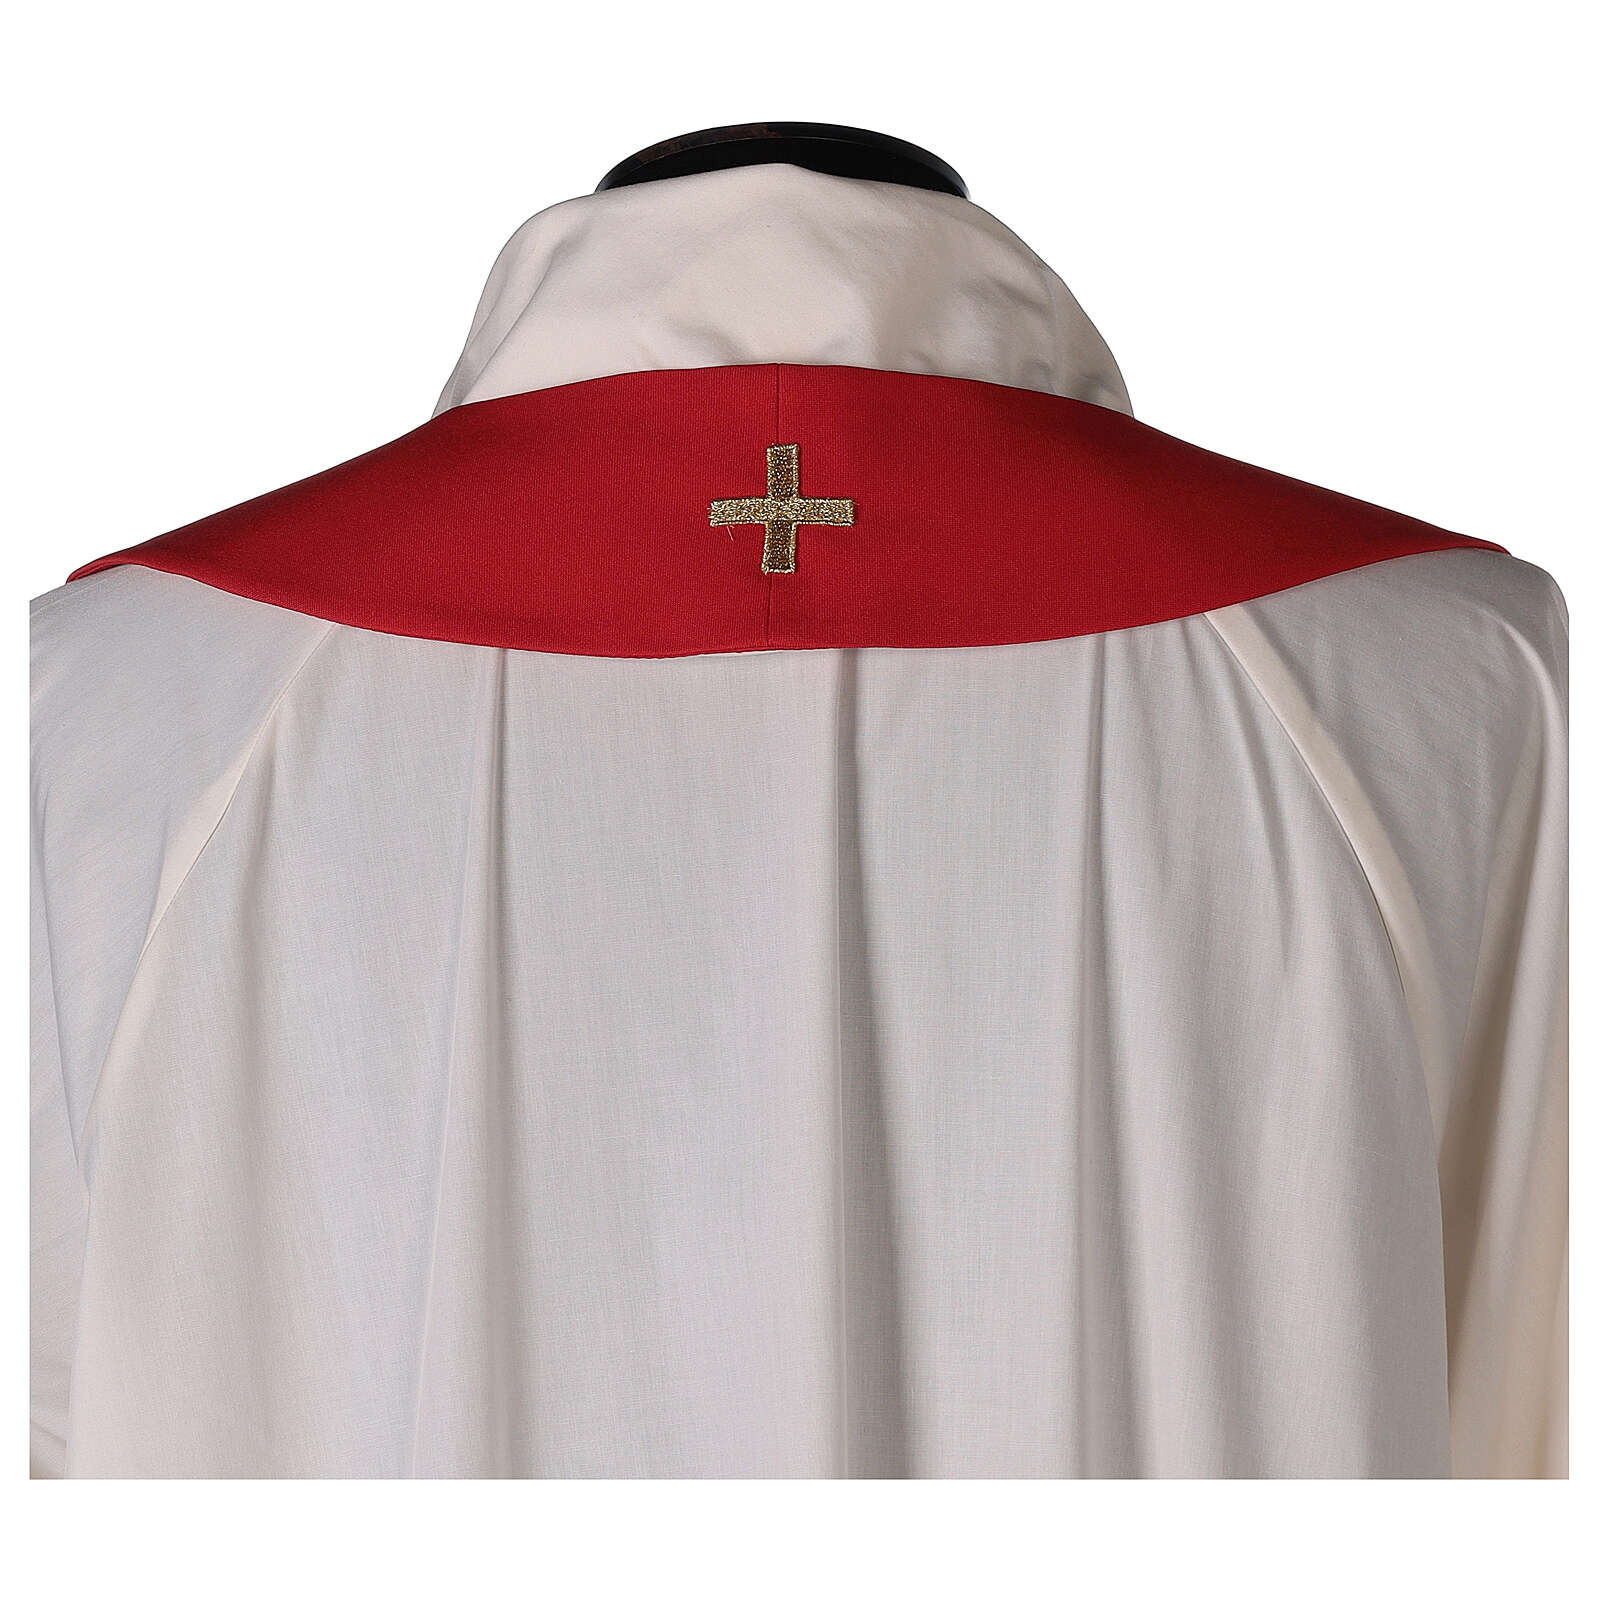 Monastic Chasuble with cross, rays and IHS embroidery in 80% polyester 20% wool 4